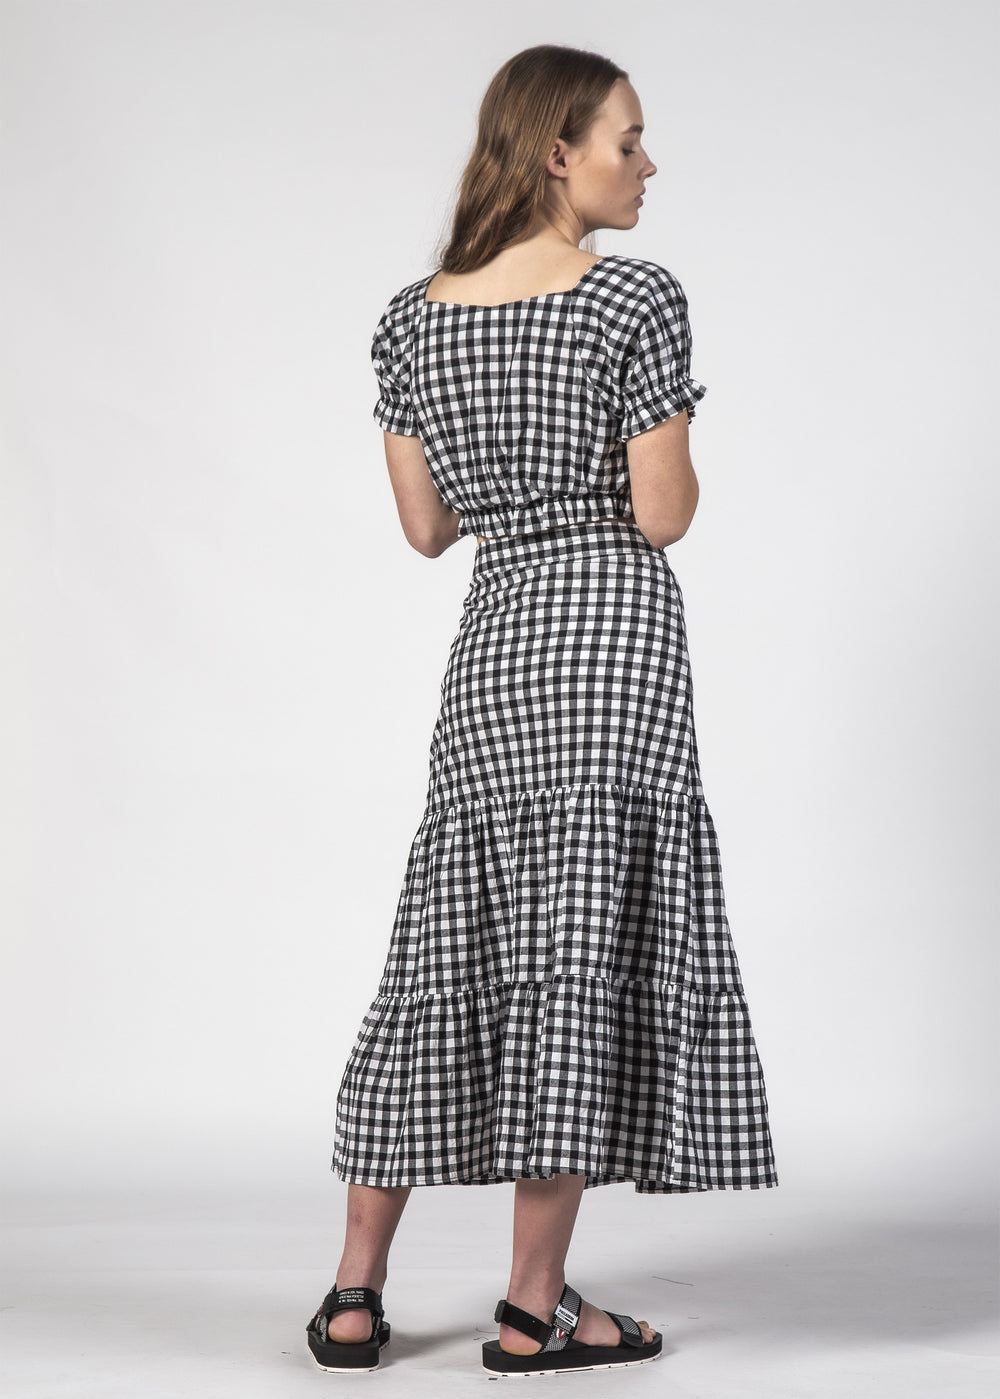 NICO TOP BLACK GINGHAM